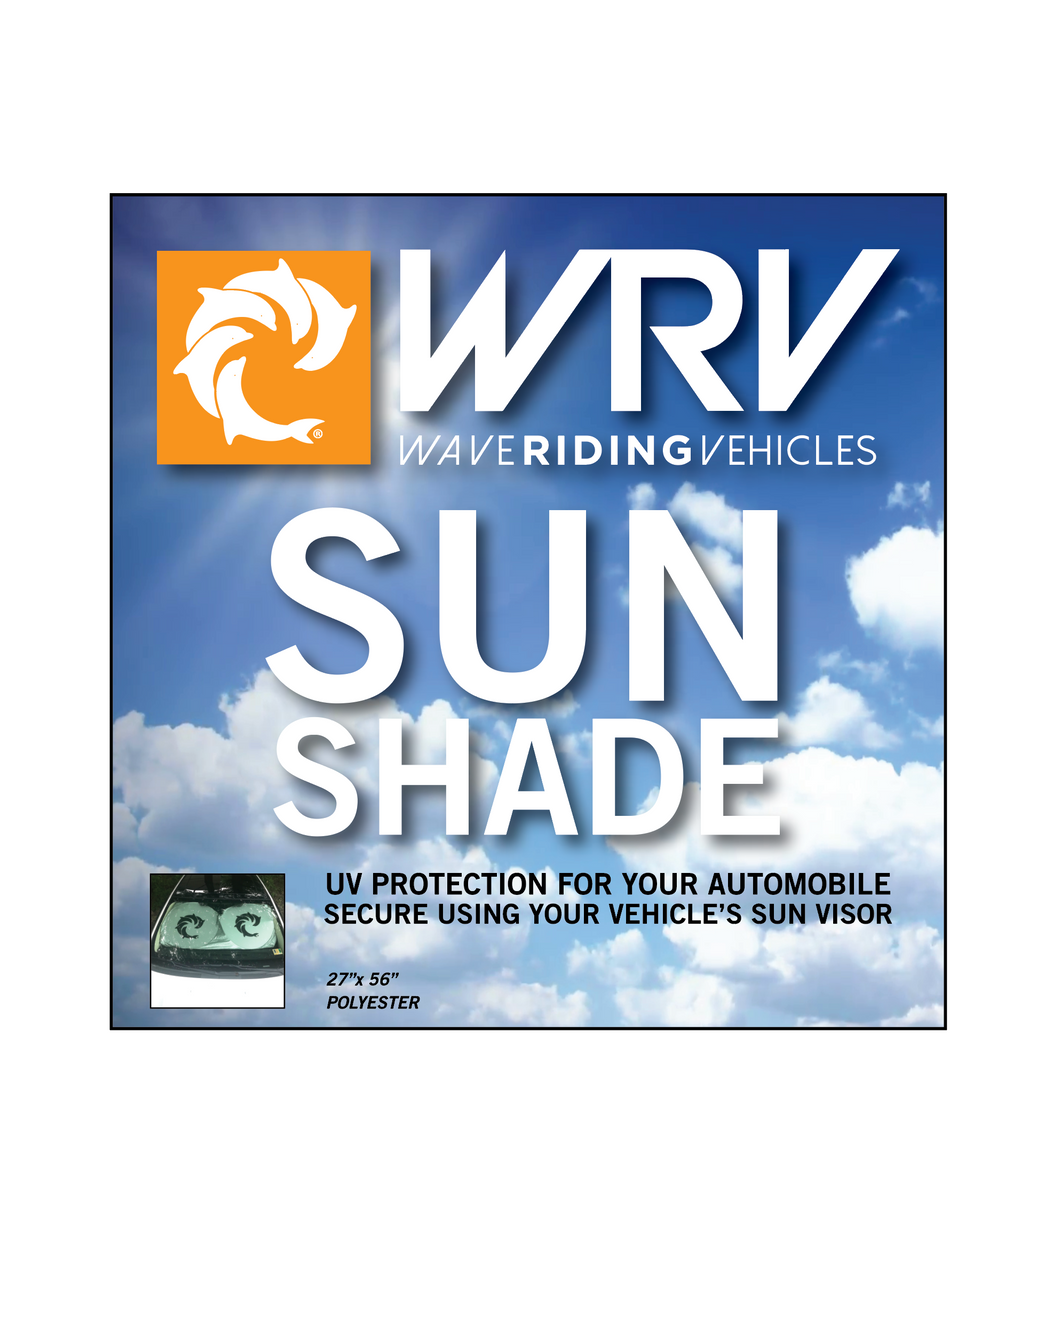 Vehicle Sun Shade